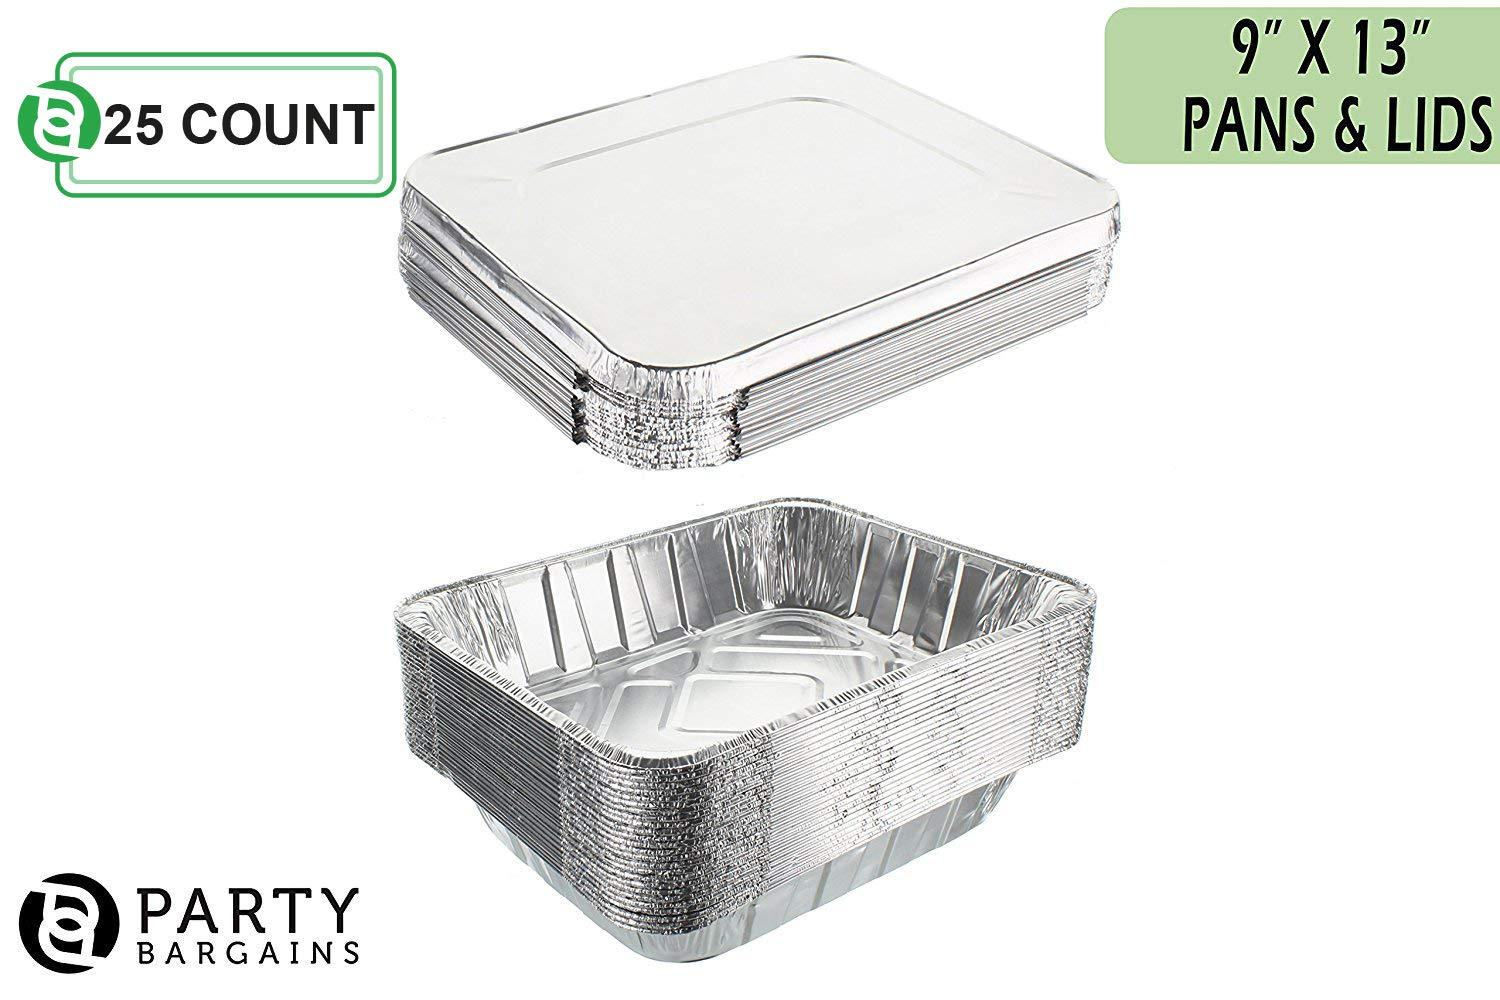 Aluminum Foil Pans | Disposable Pan Containers with Lids Set | Excellent for Broiling, Roasting, Grilling, Baking Cakes, Pies, Lasagna, More | 9 x 13 Half Size Deep Steam Table Pans | 25 Count